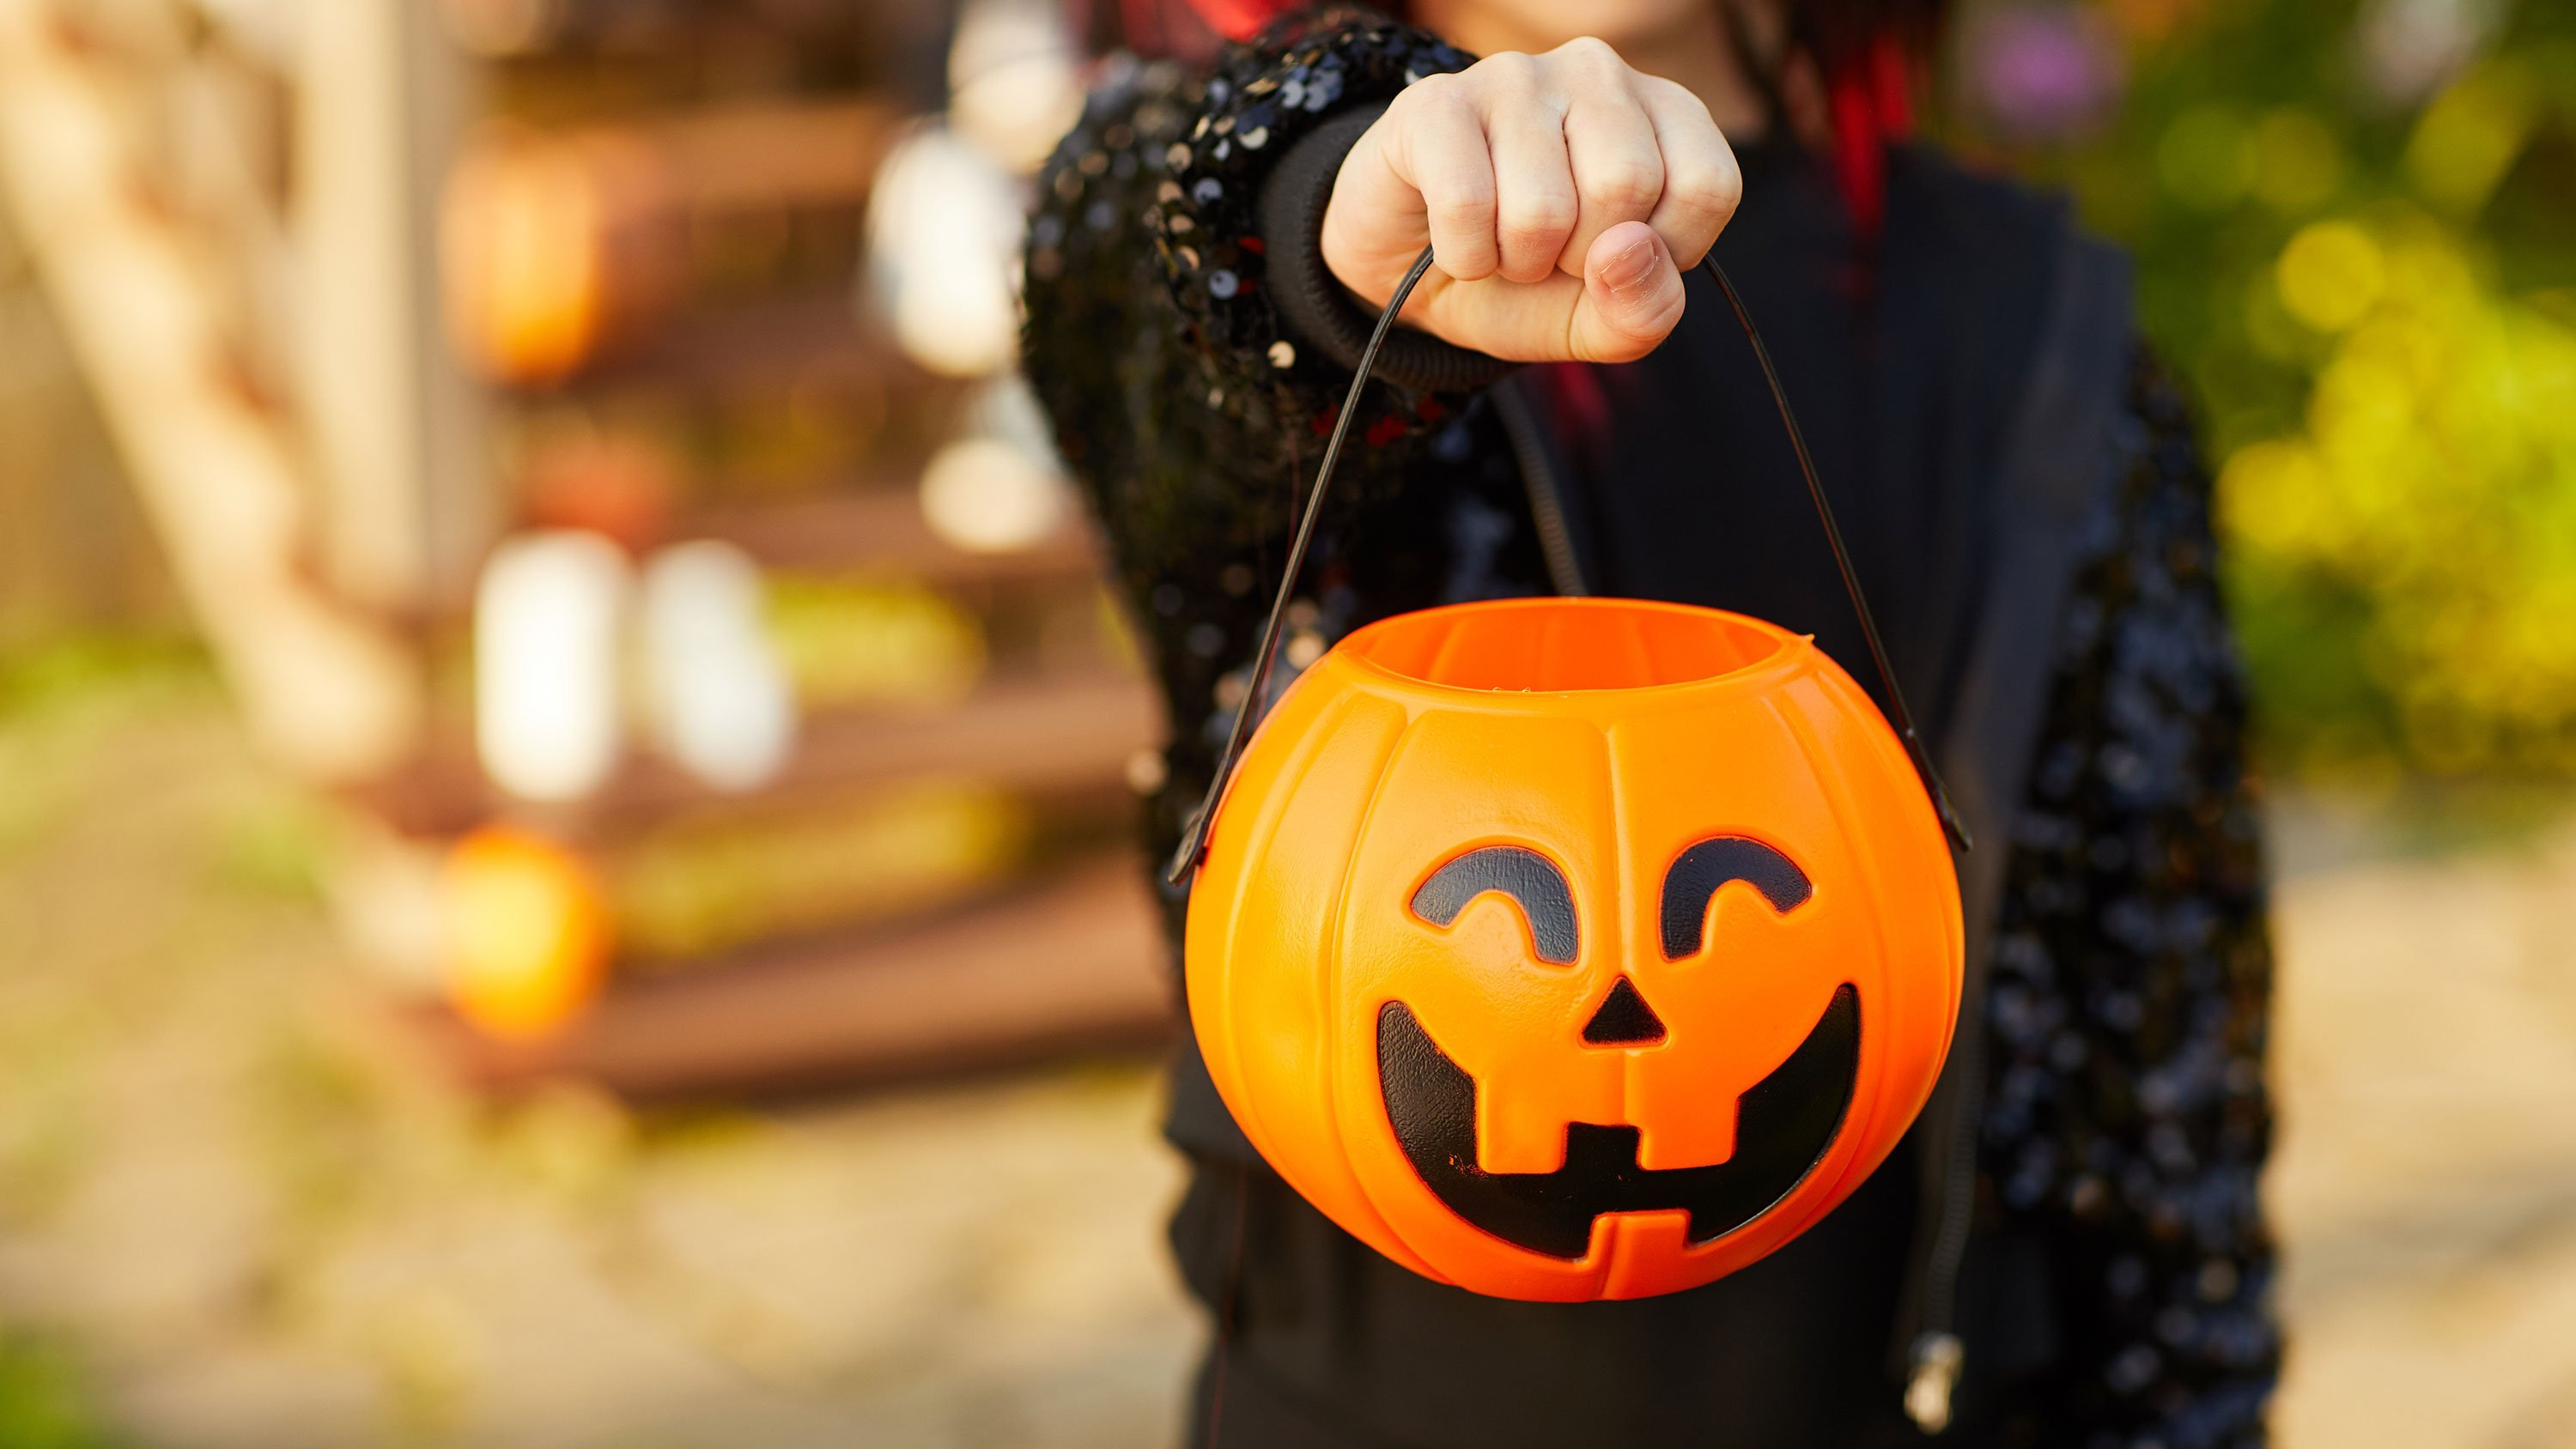 You may have heard about the Virginia town that went viral for banning anyone over 14 from trick or treating. Here's the whole story